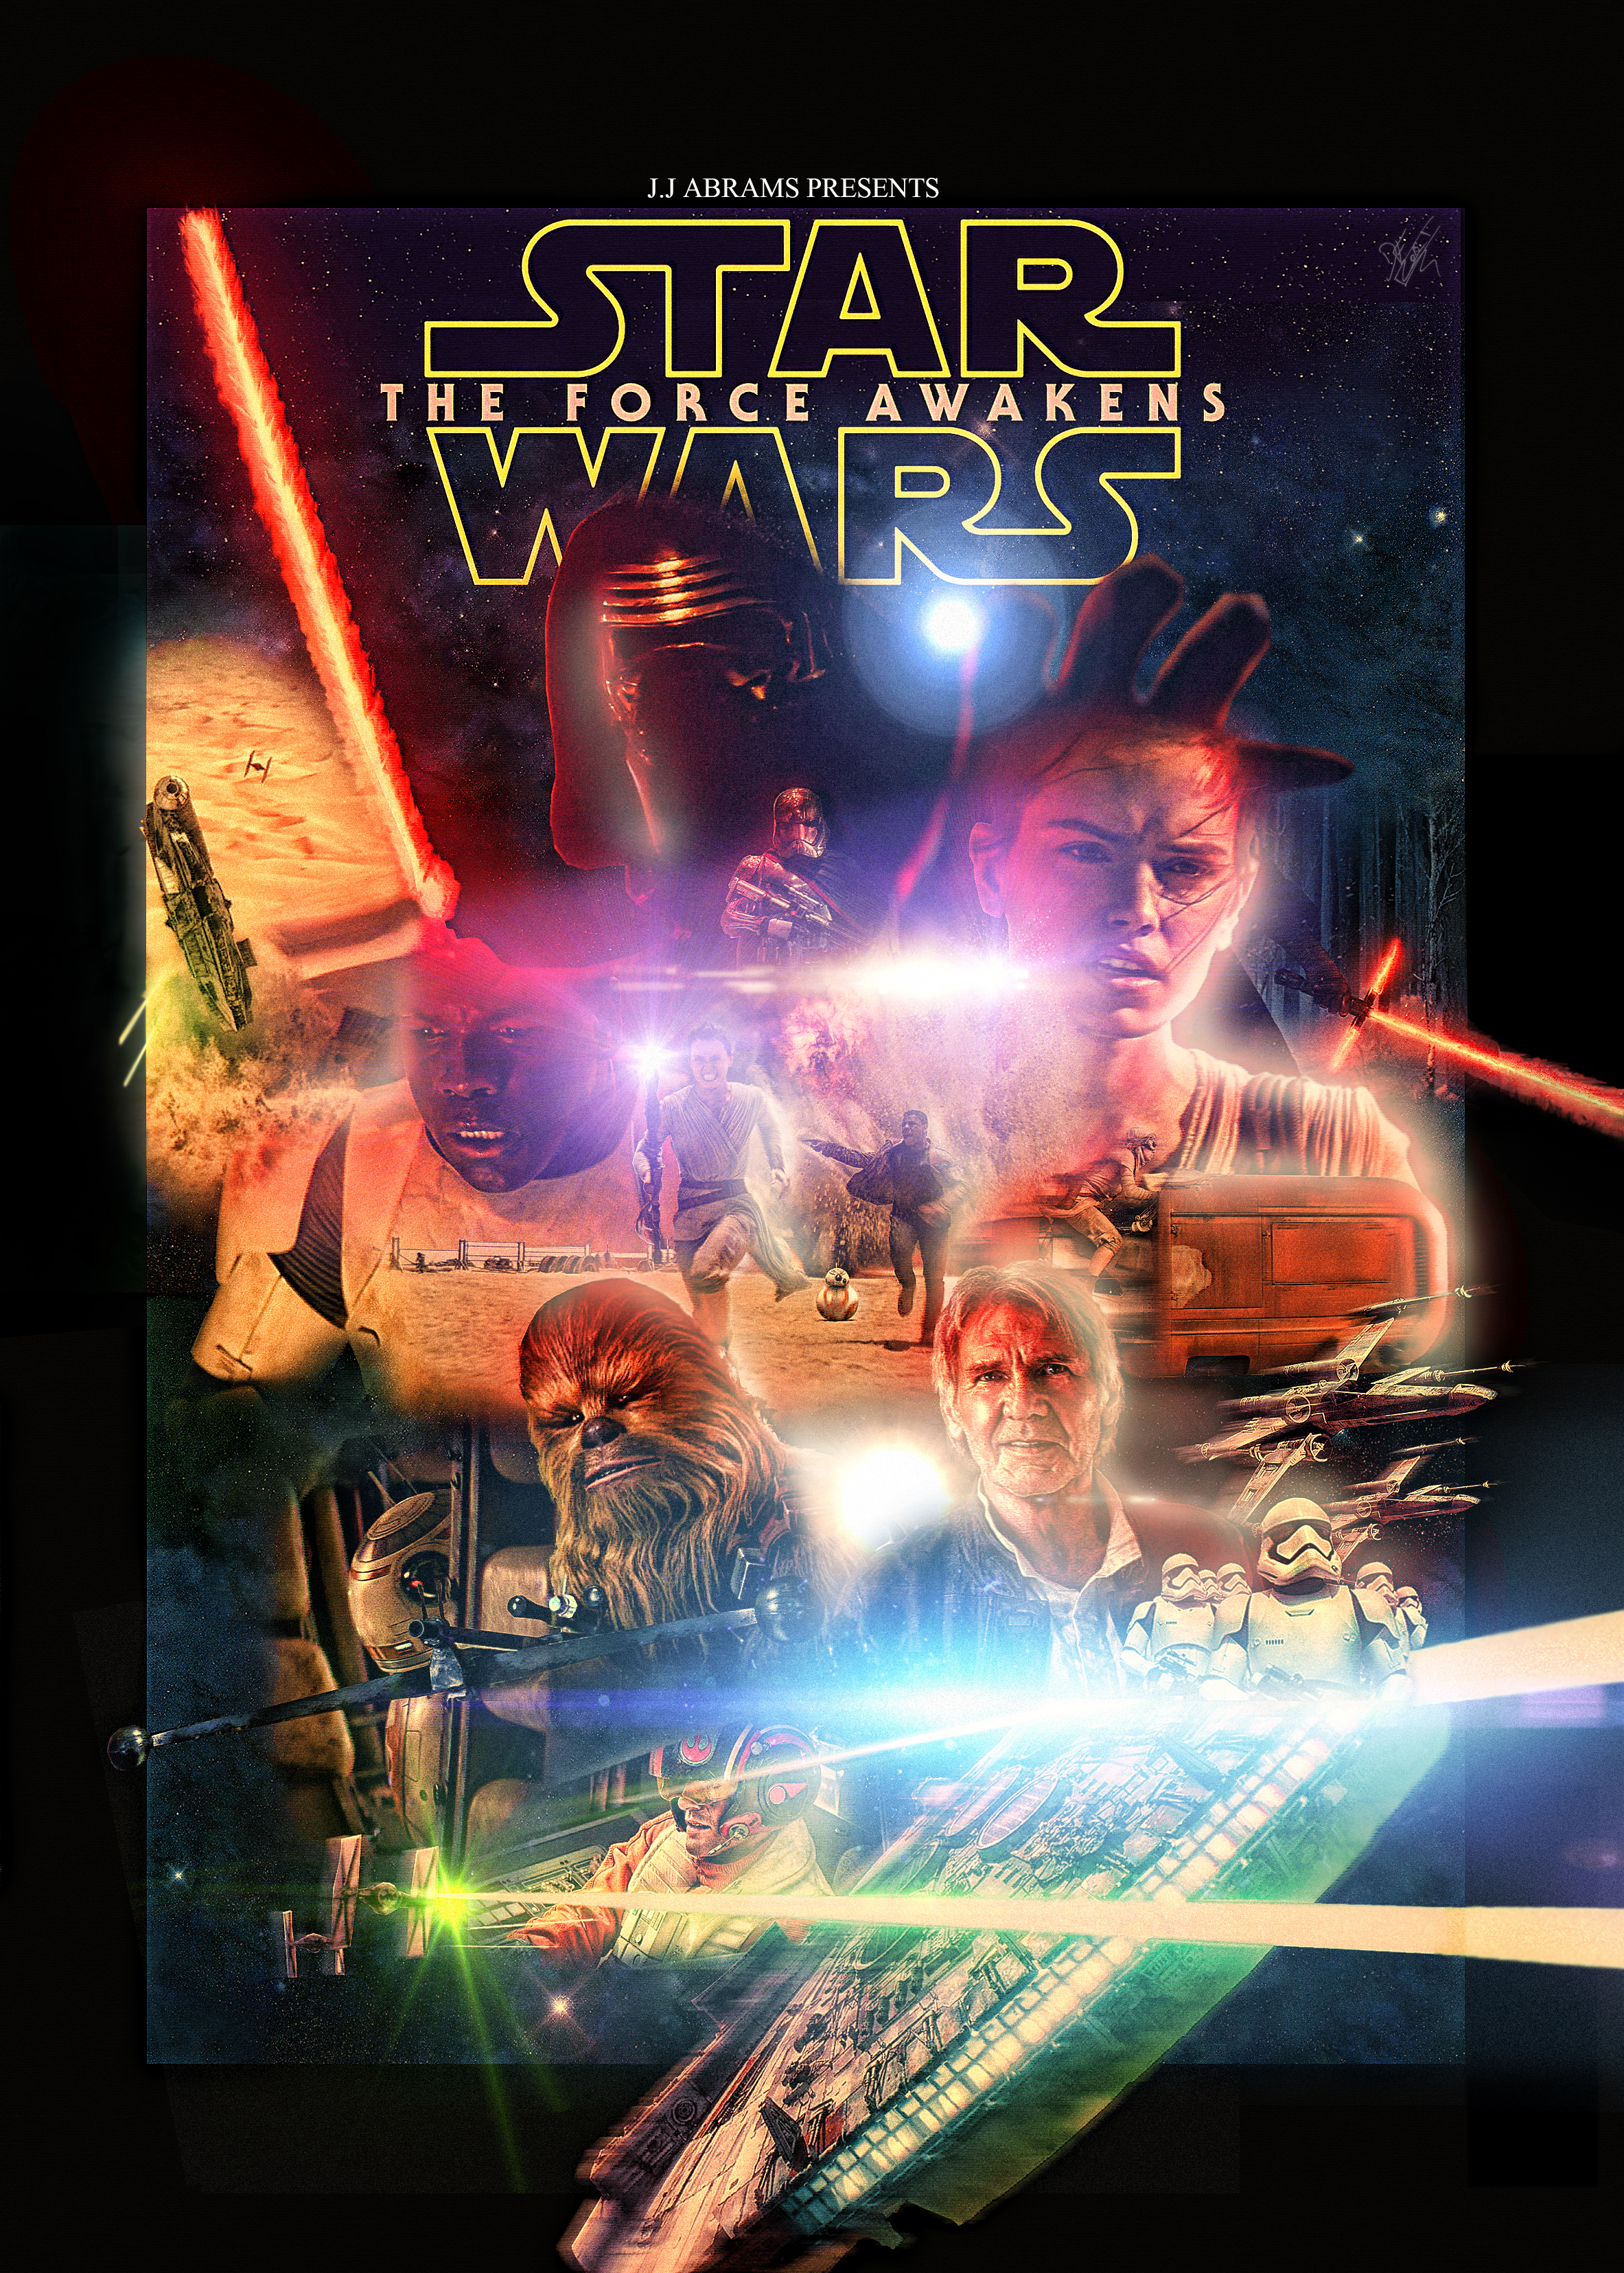 star wars:the force awakens(movie) images sw:the force awakens